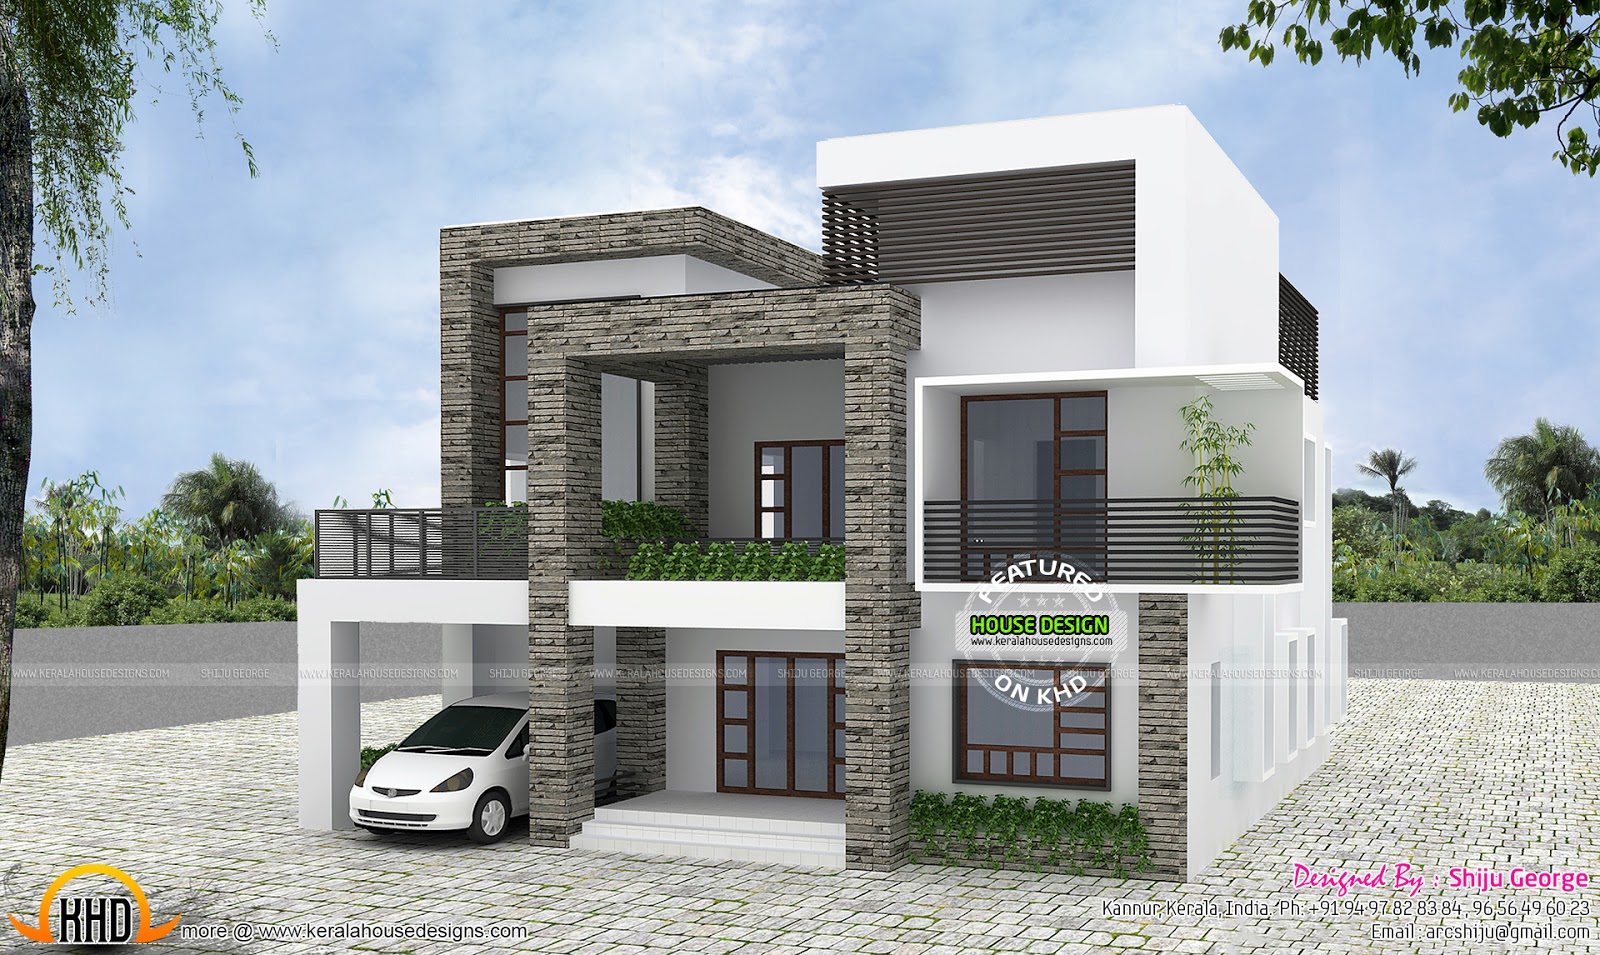 Contemporary House Shiju George Home Design Simple